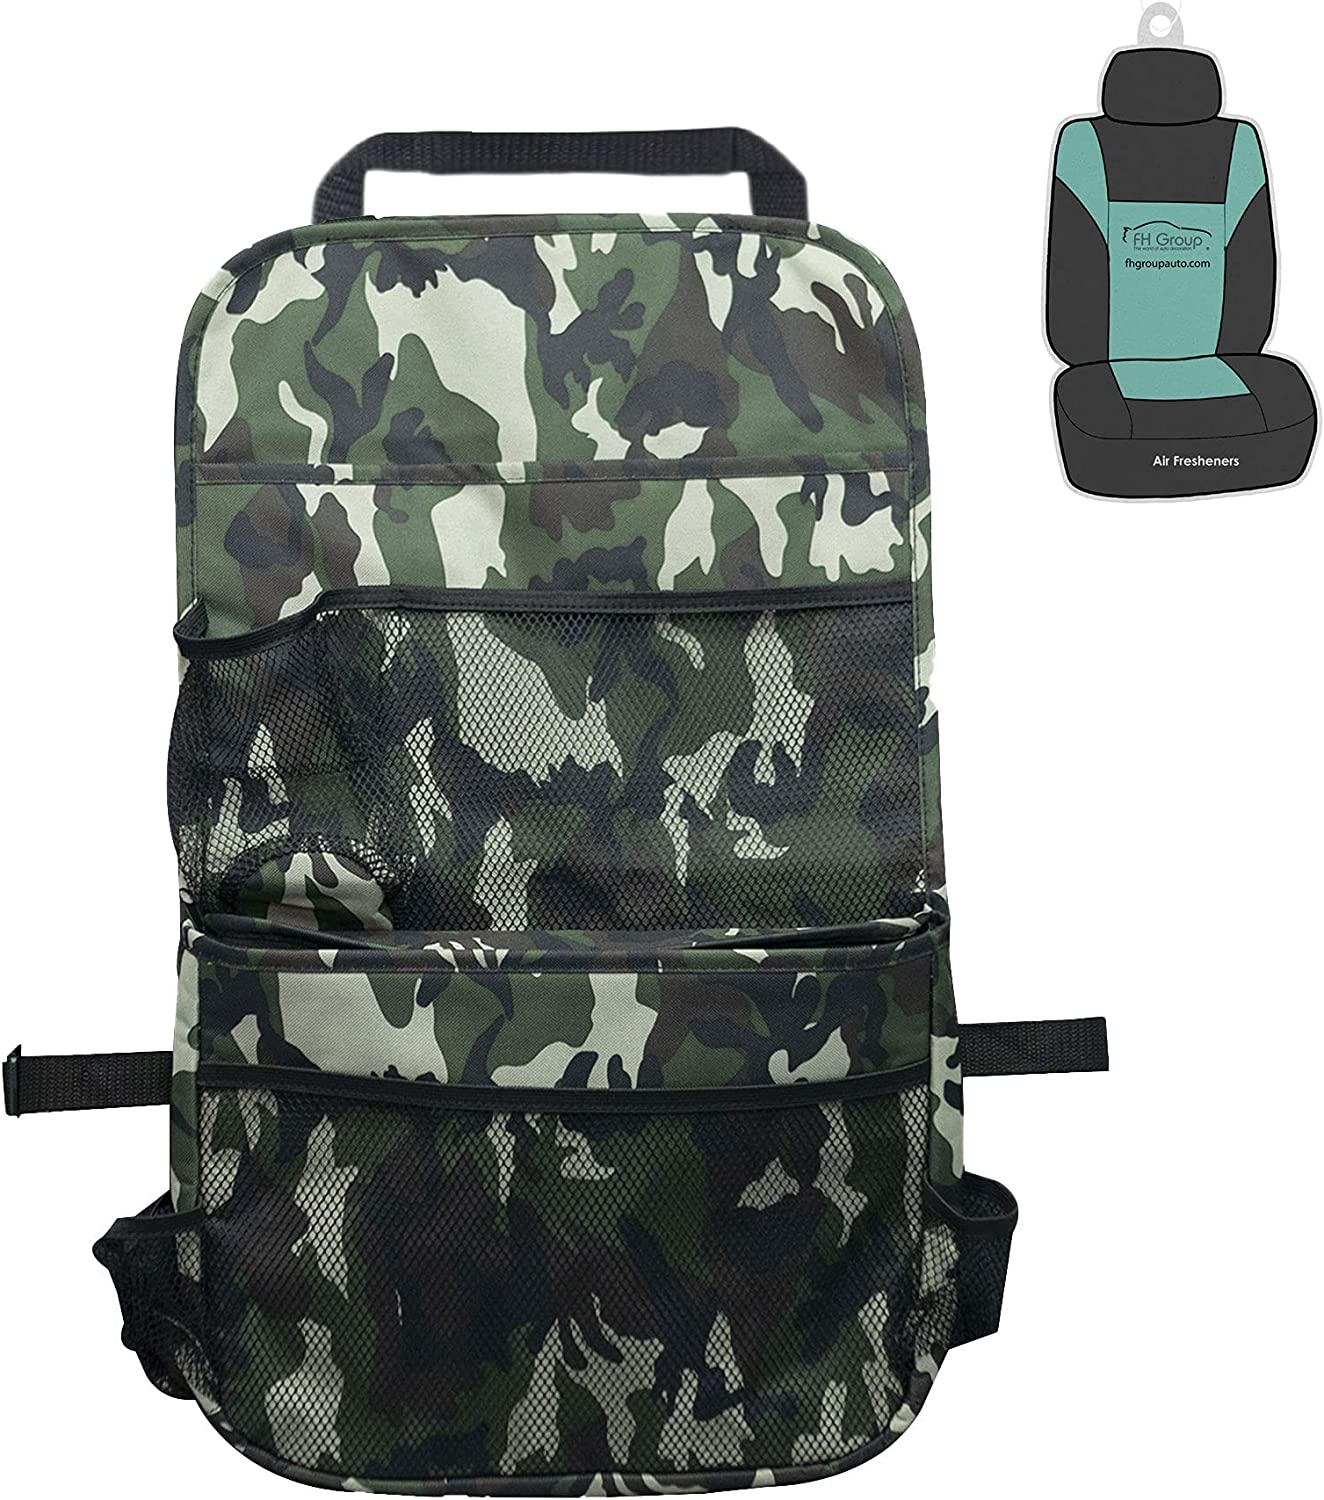 FH Group Multi-Pocket Camo Print Seat Back Organizer with Cooler - Backseat Organizer for Kids-Universal